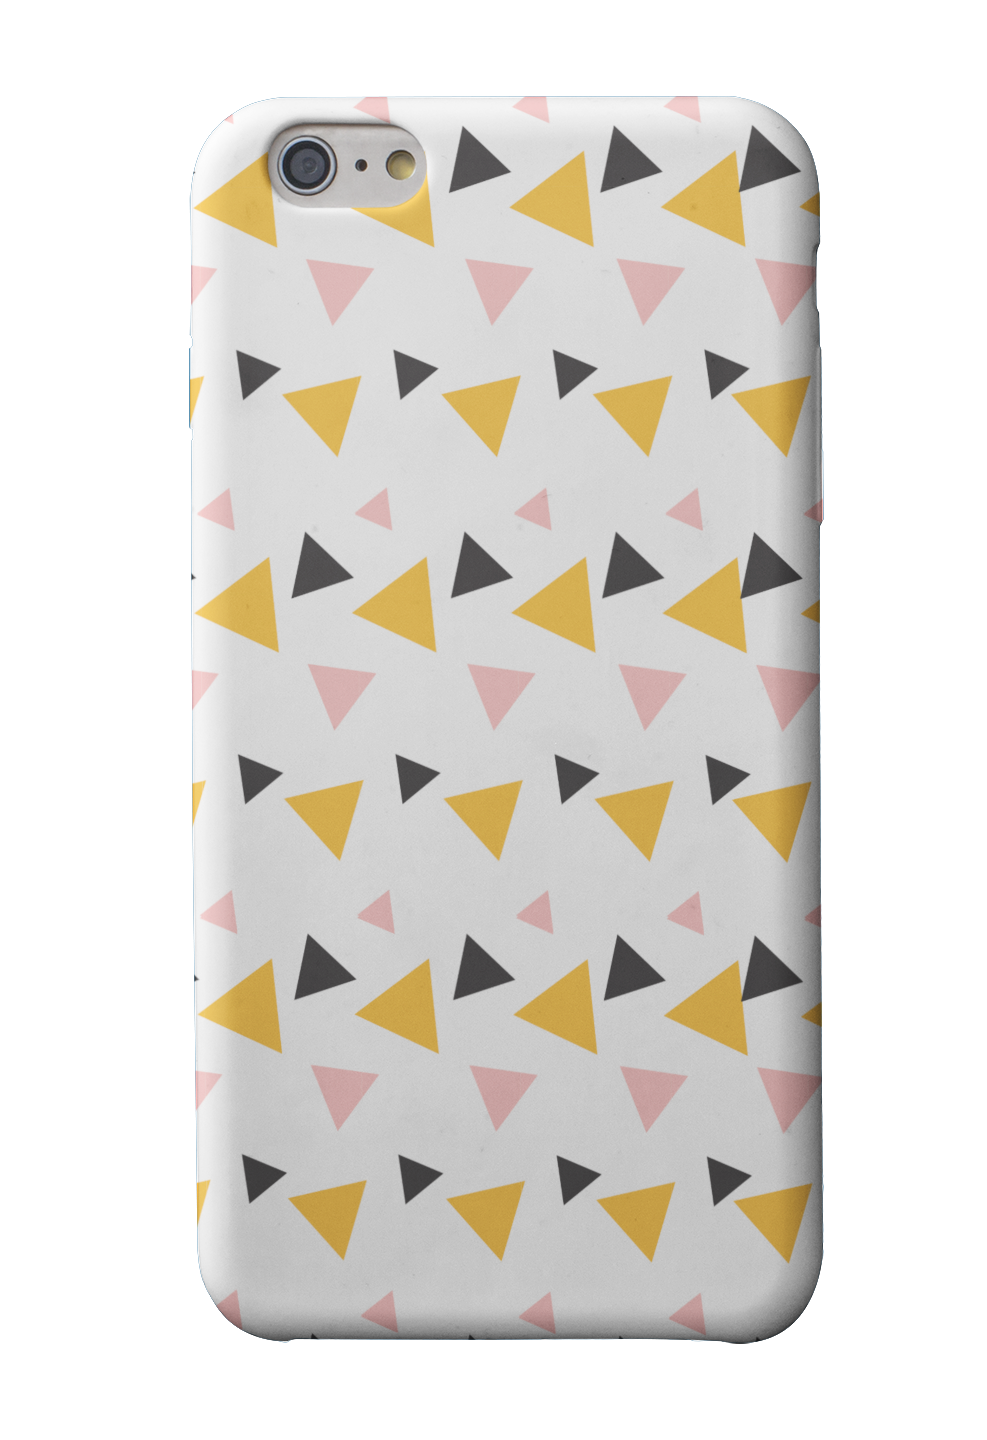 Pattern Phone Case 75 - ateedude